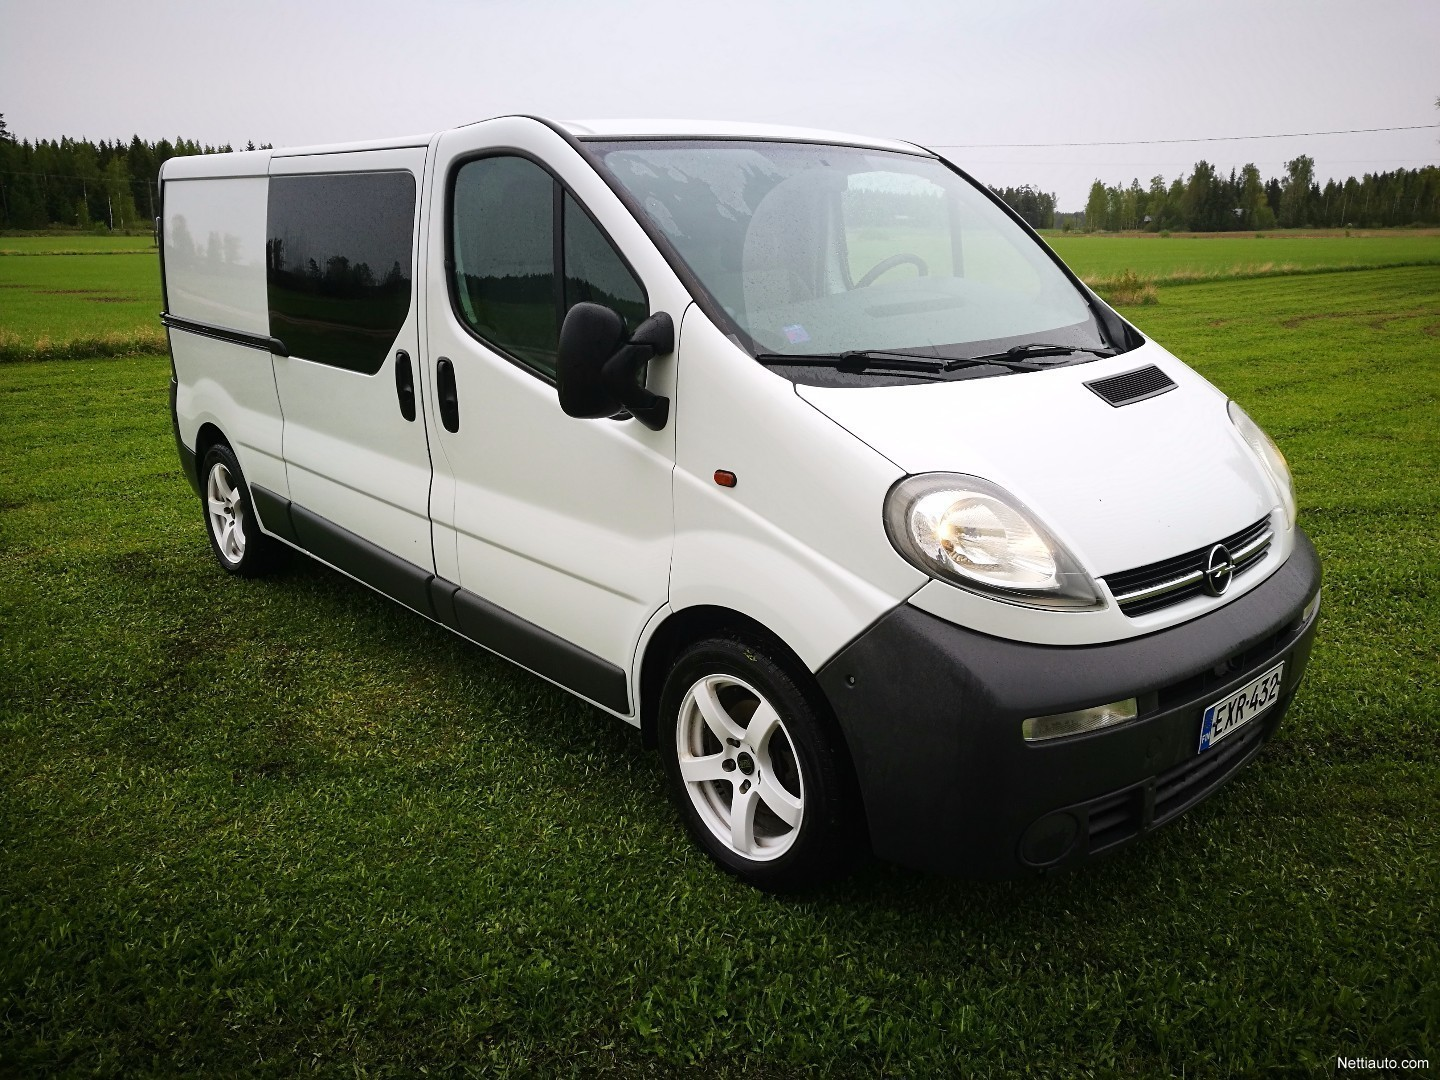 opel vivaro 2 5 cdti van l2h1 pitk long low 2006 used. Black Bedroom Furniture Sets. Home Design Ideas